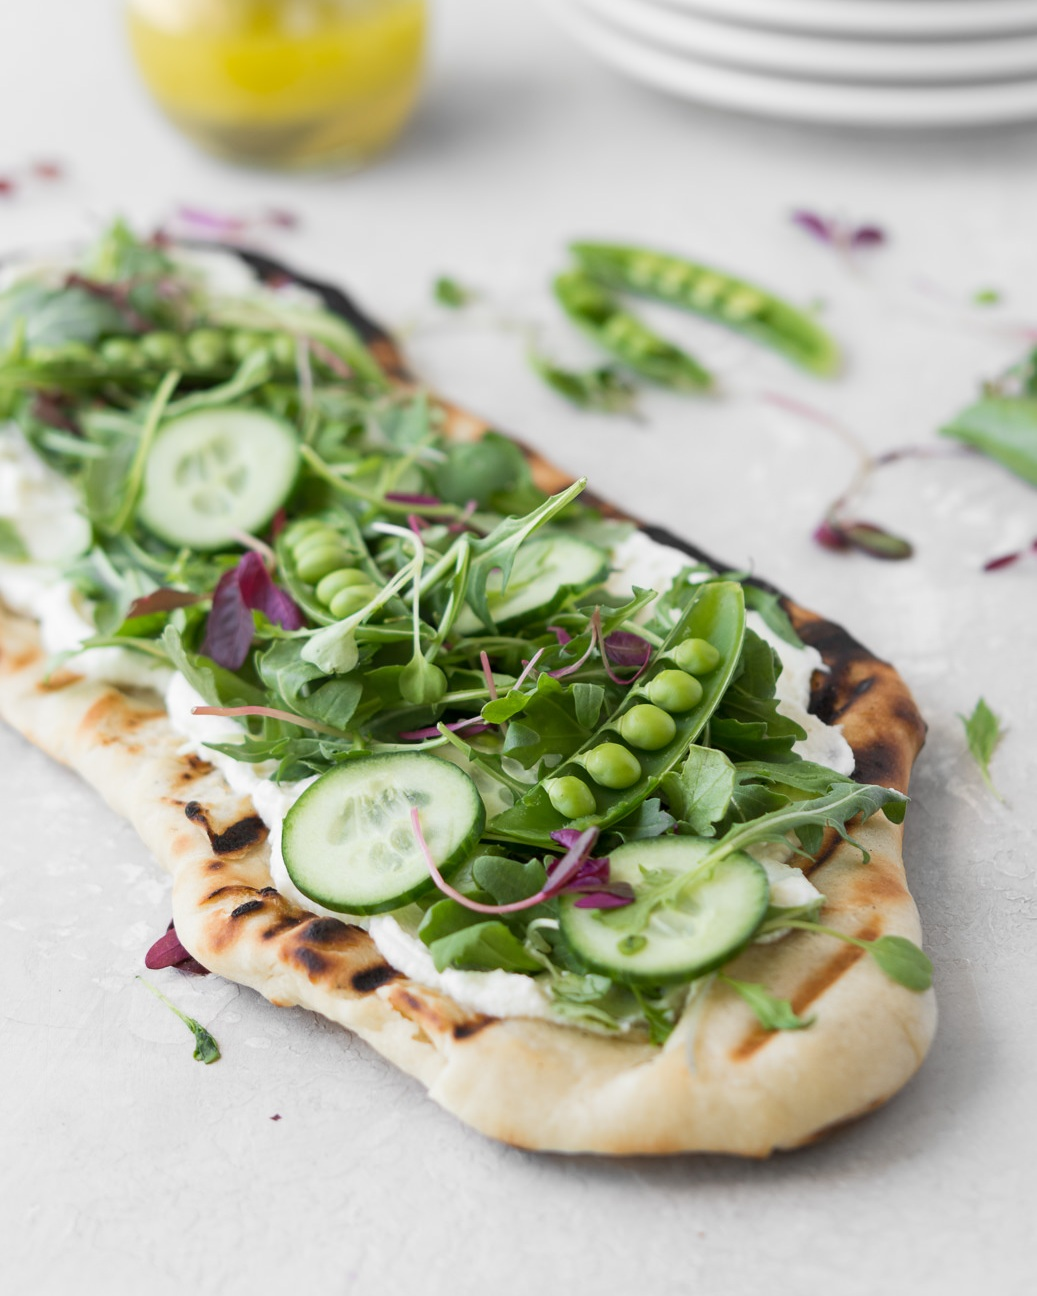 grilled+flatbread+with+ricotta%2C+arugula+and+peas